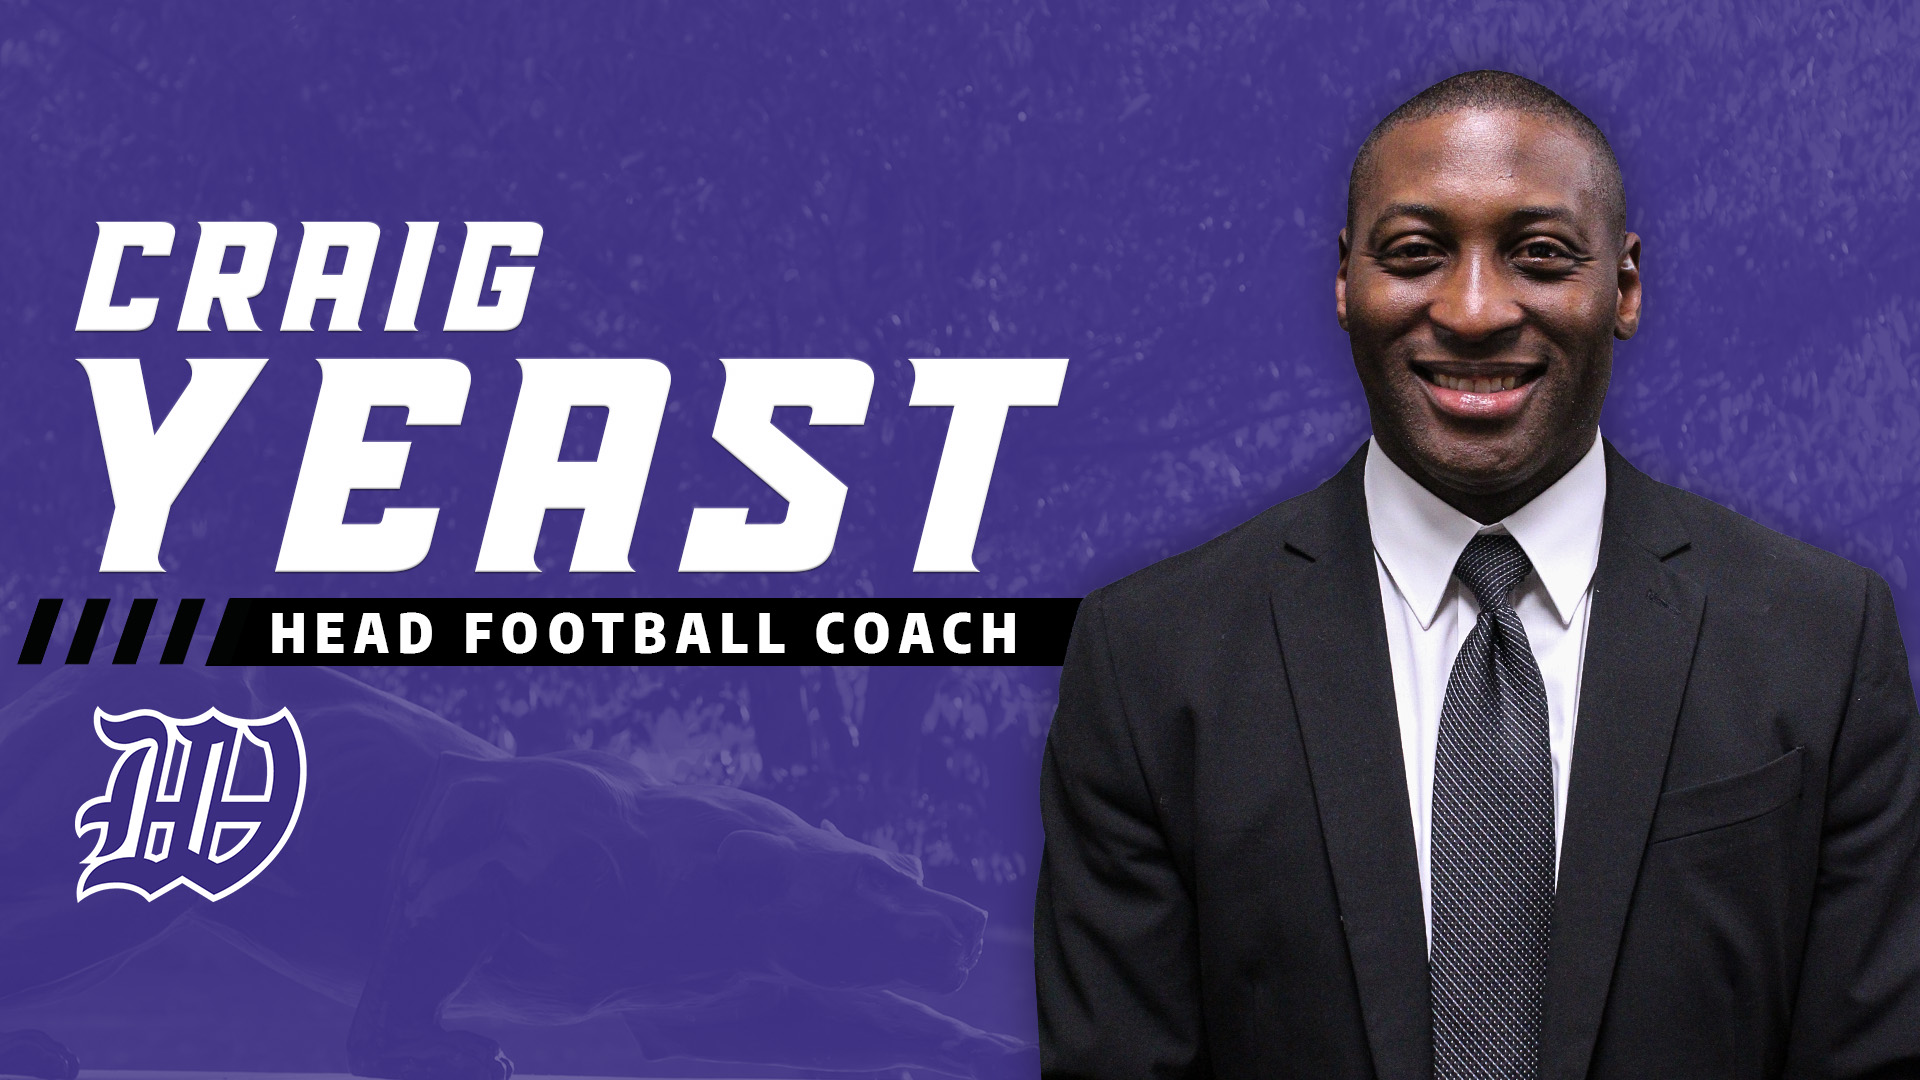 Former UK footballer Yeast to be new coach at KWC